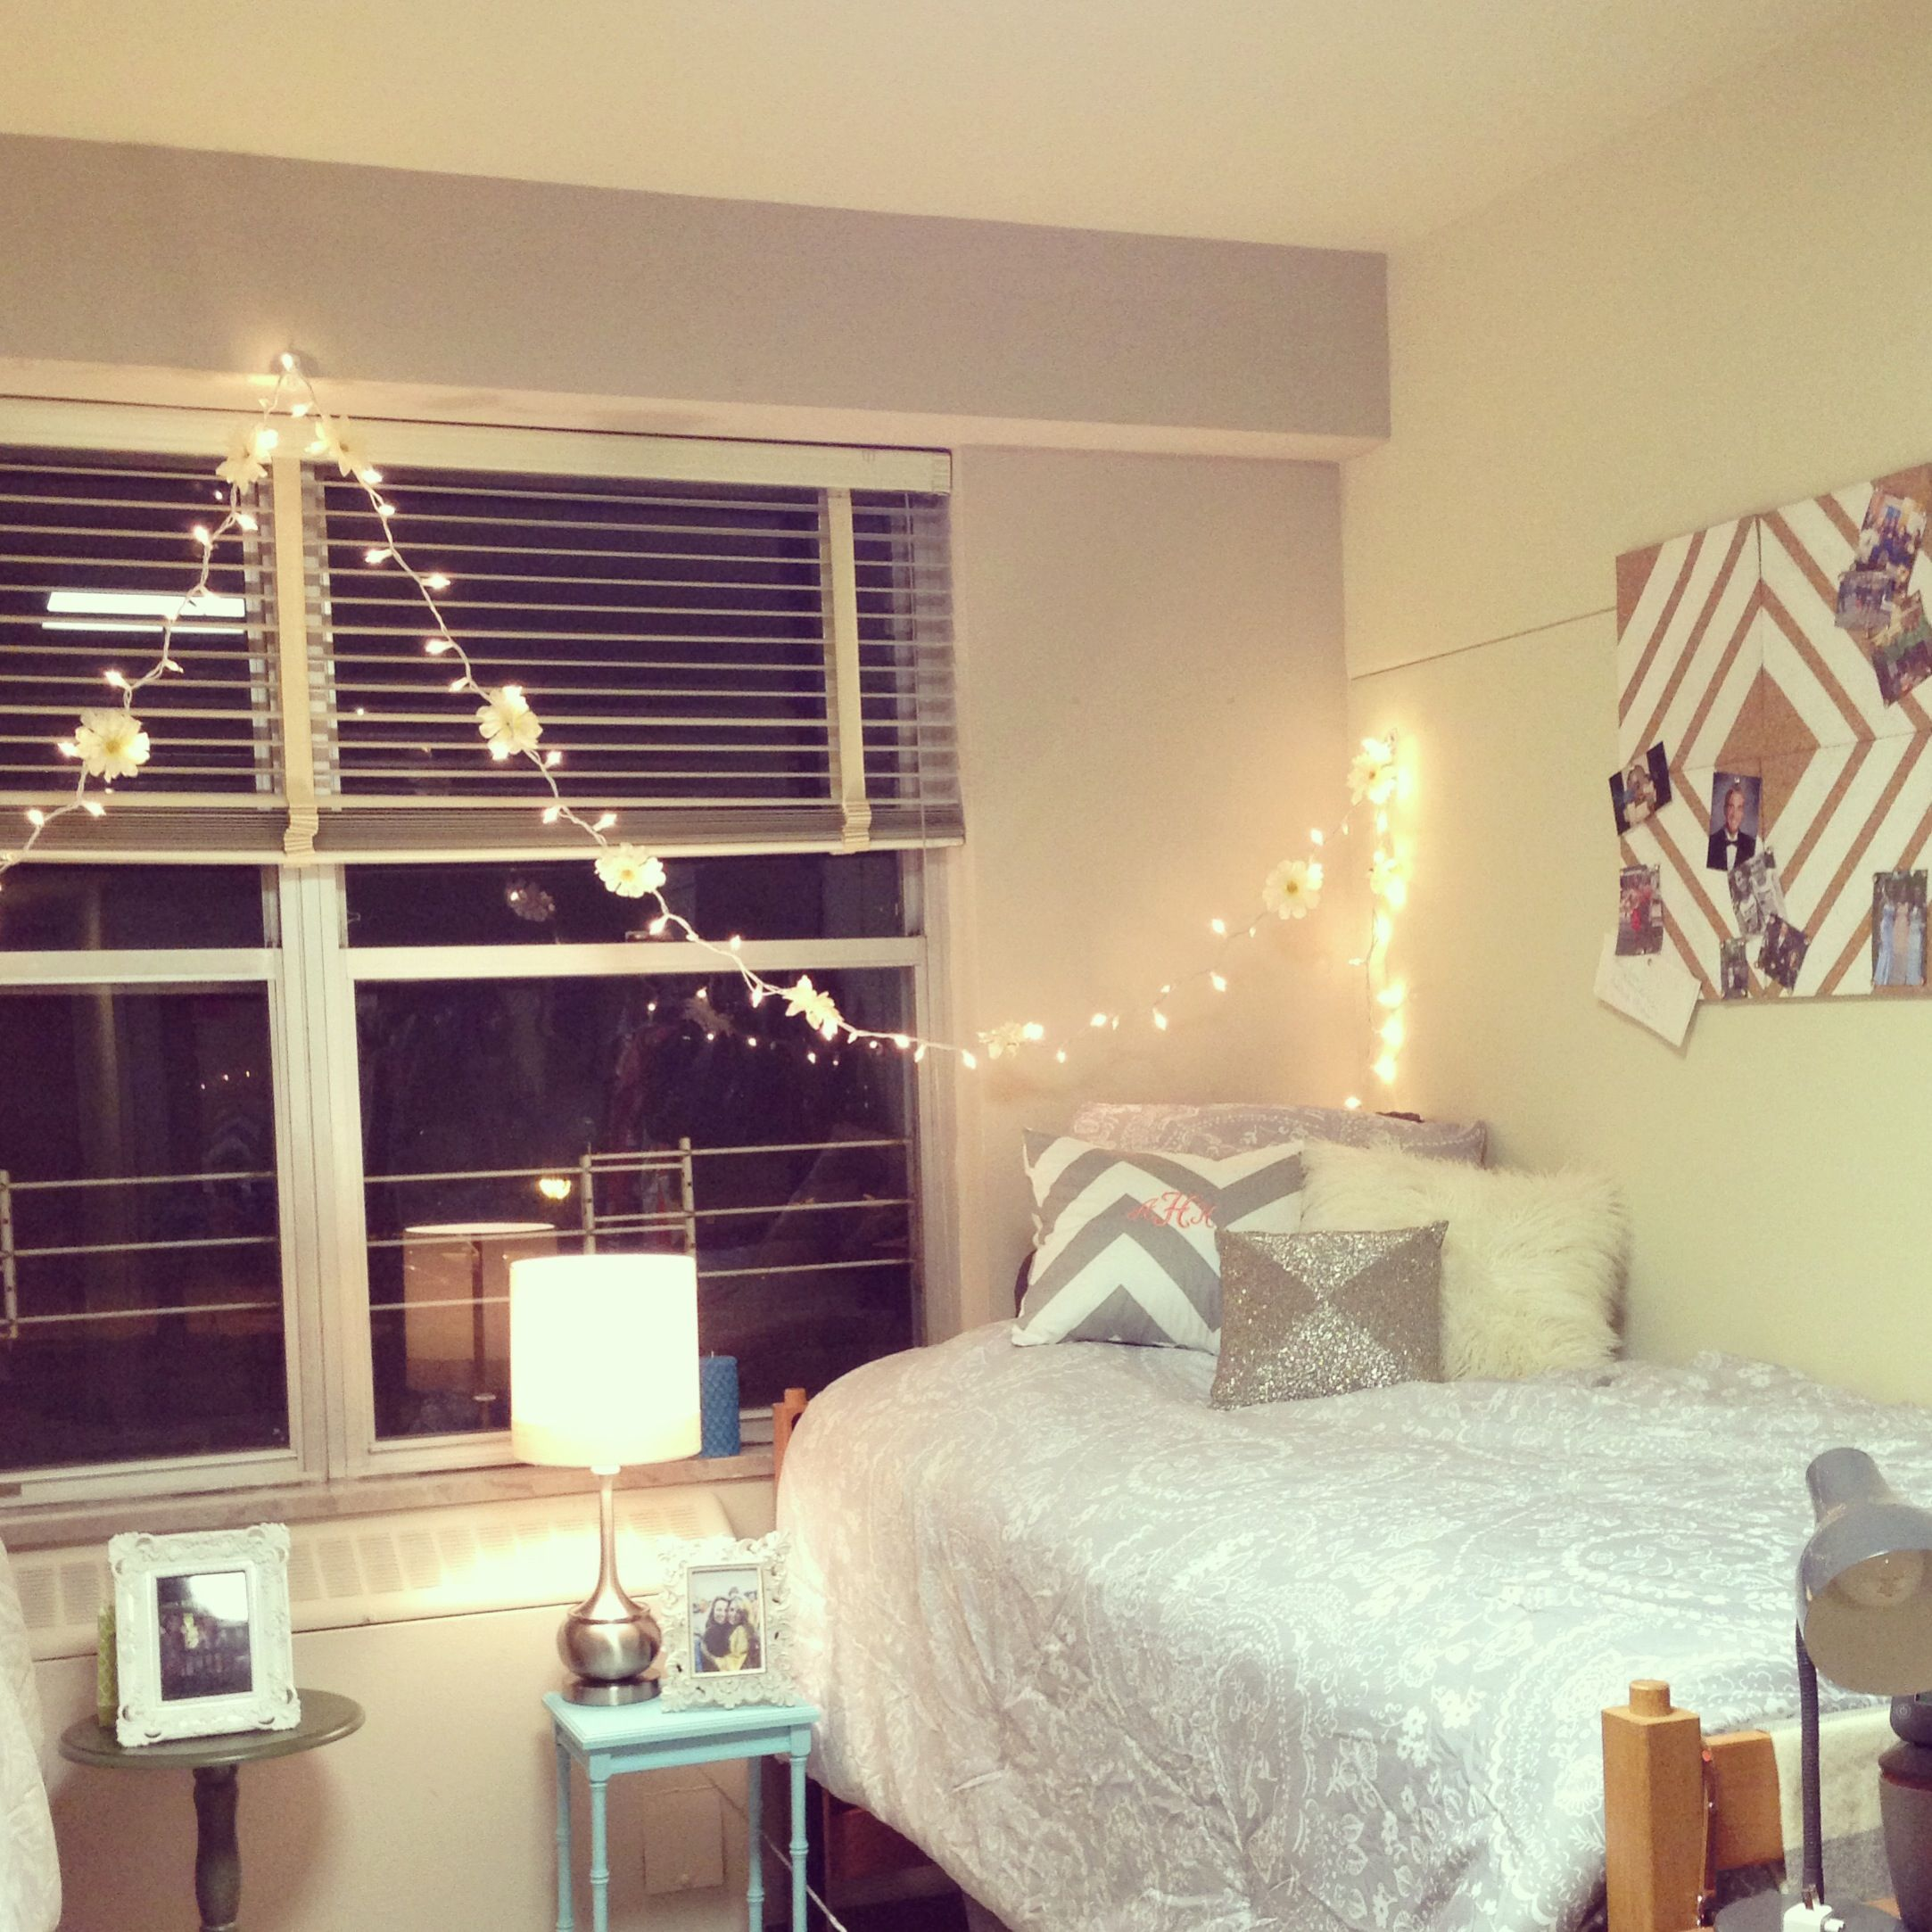 Dorm room charming pinterest dorm room dorm and lights for Cute bedroom ideas